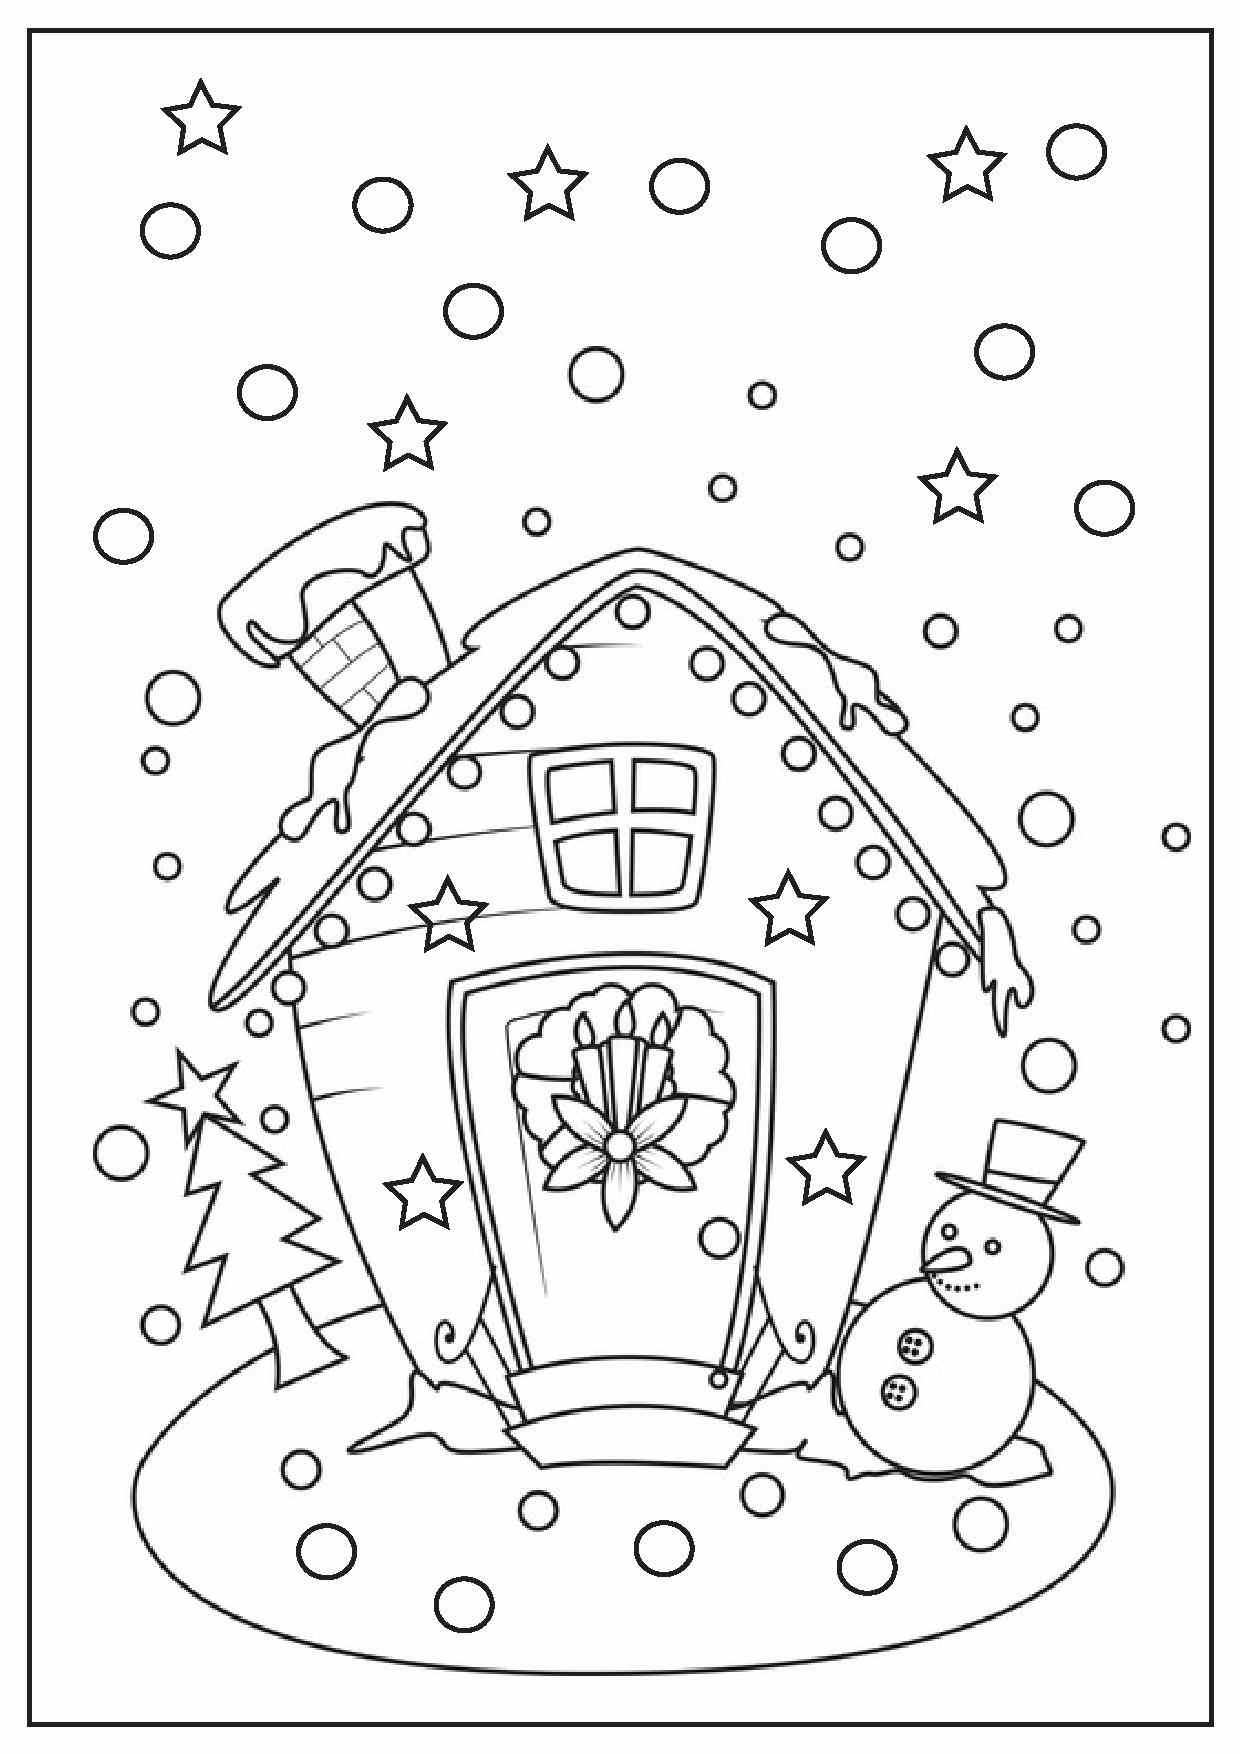 science lab coloring pages - photo#26